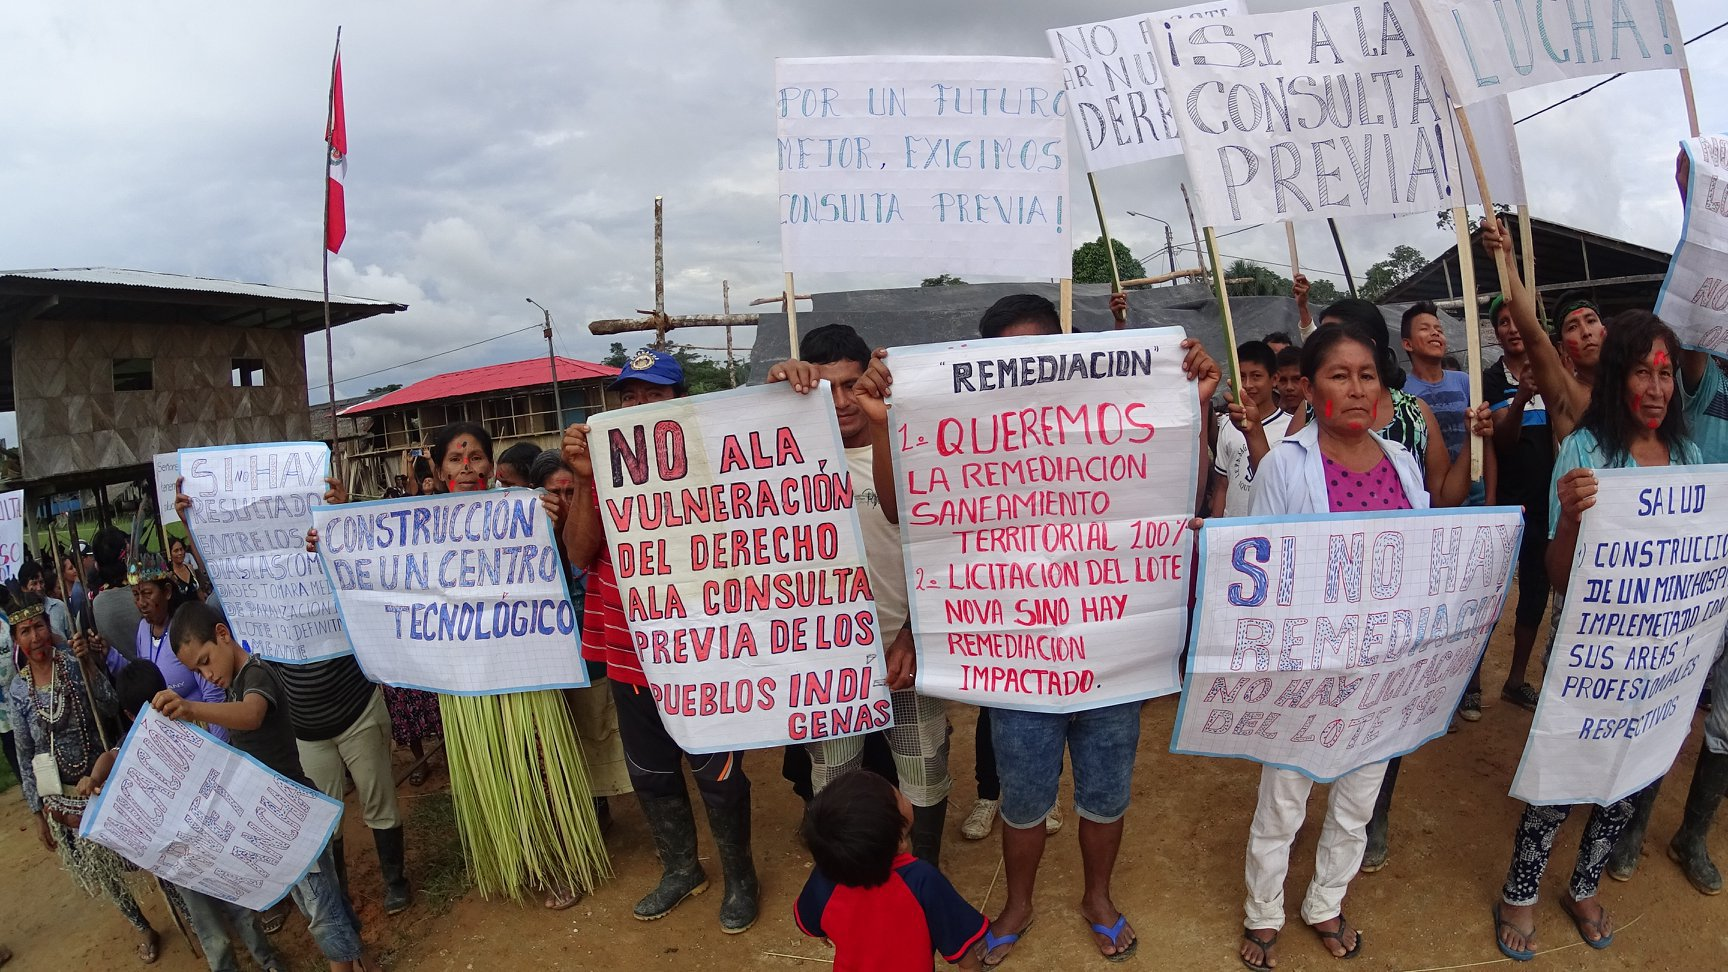 The indigenous Kichwa community participates in a peaceful protest in October 2017 demanding the right to be consulted regarding extractive activities in their communities.